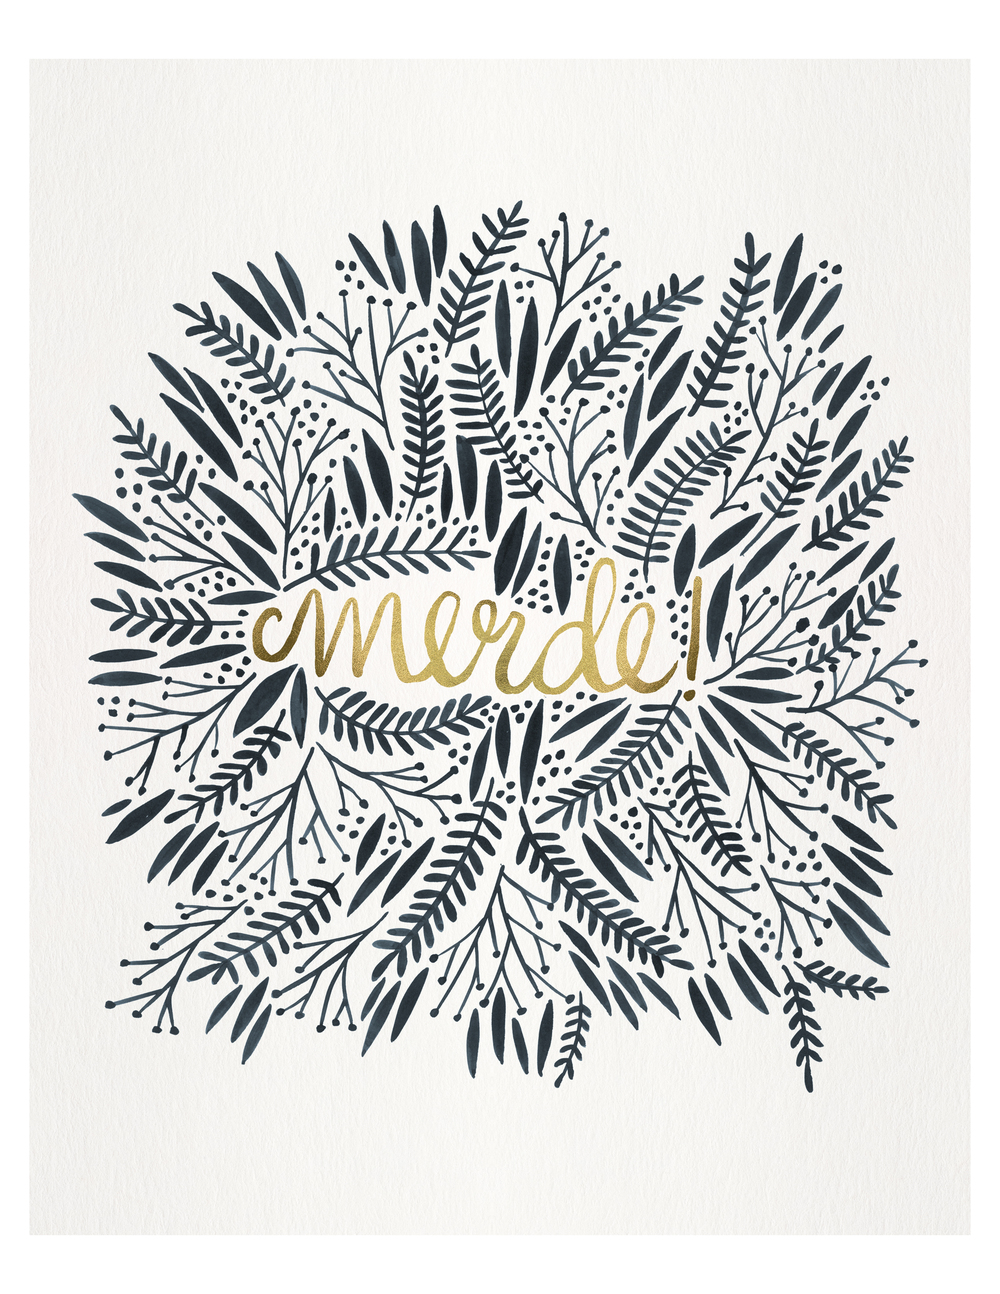 Merde! available  here .